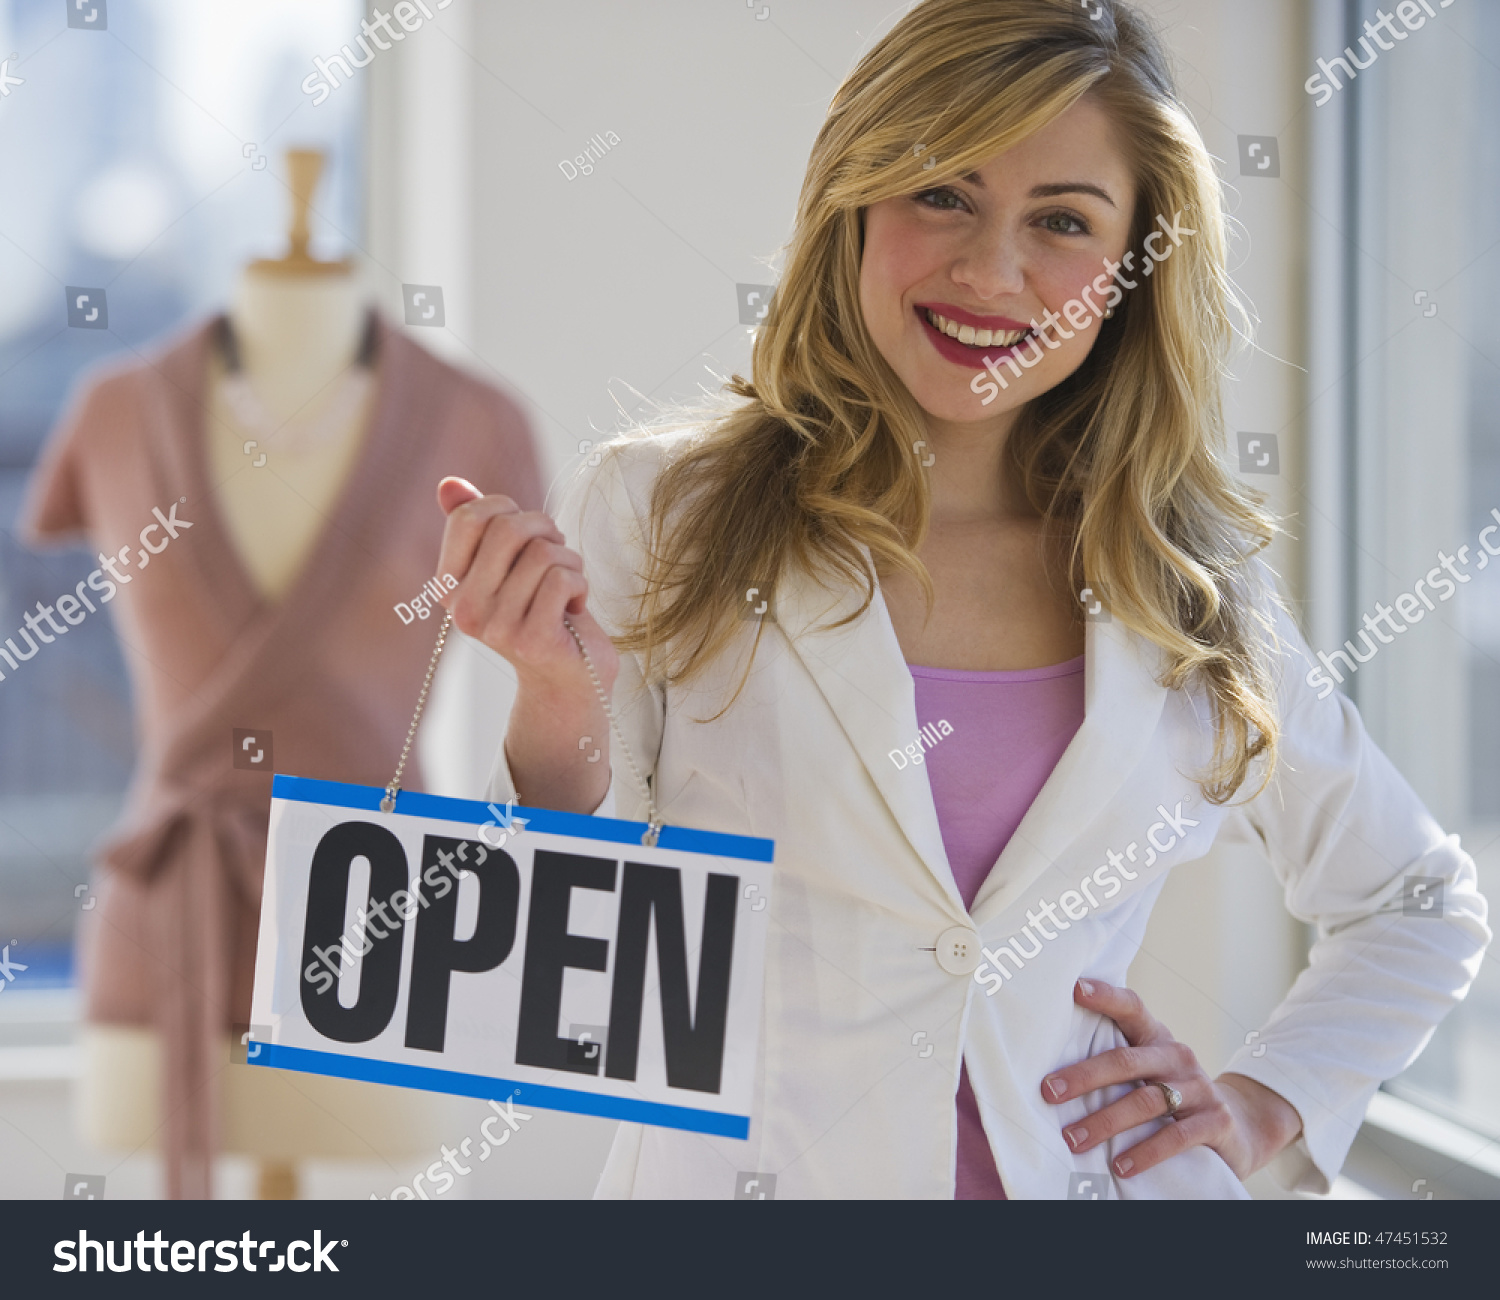 female clothing store worker opening shop stock photo  female clothing store worker opening up shop